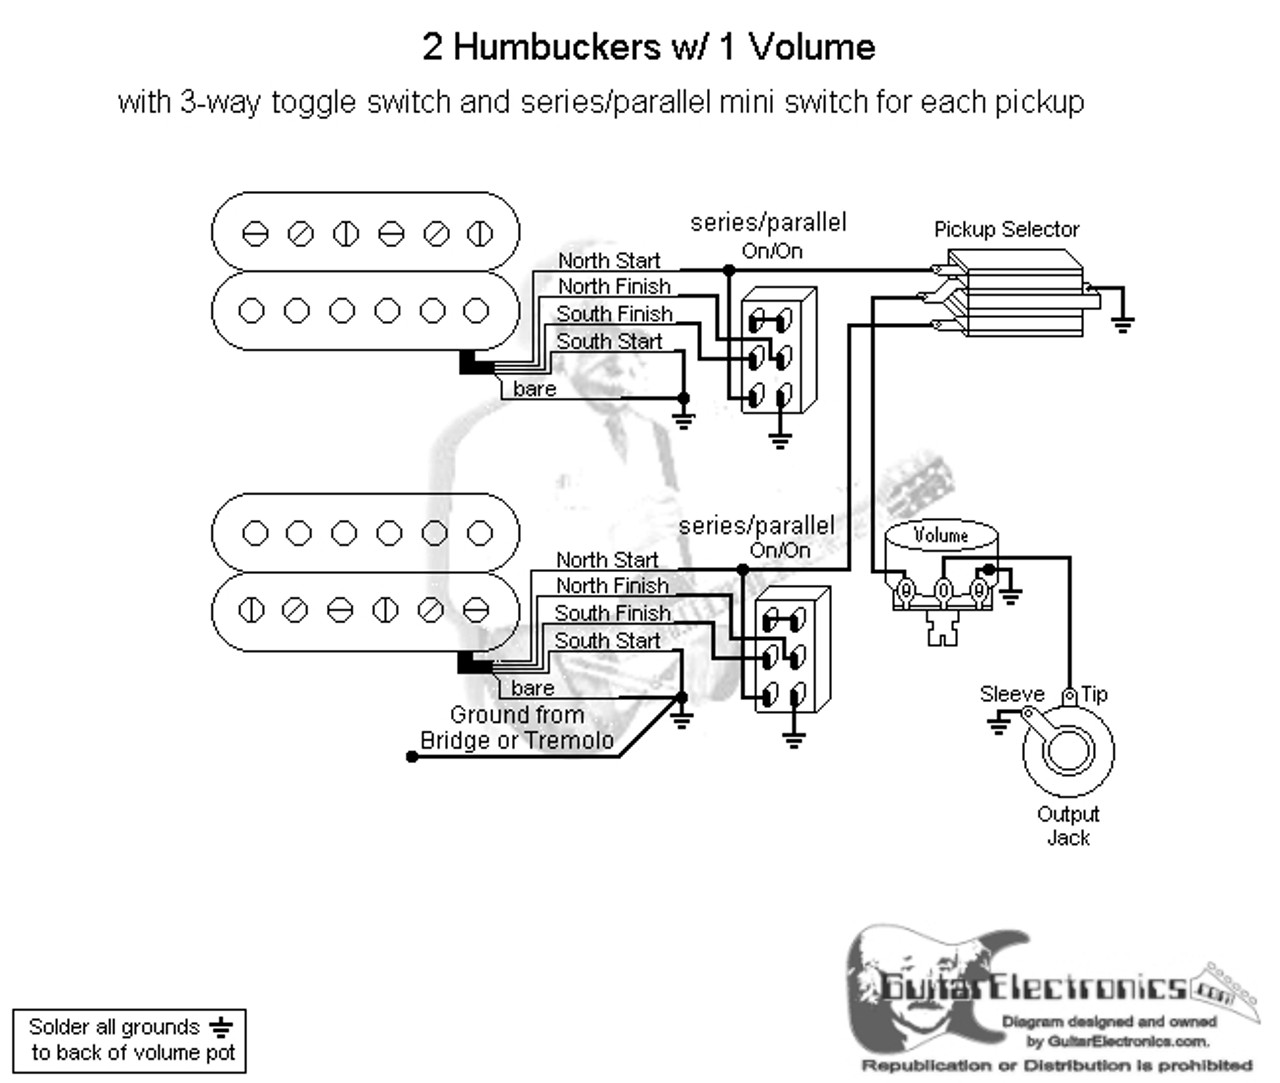 Mini Toggle Wiring Diagram | Wiring Diagram on 3-way switch two lights, 3-way lamp wiring diagram, 3-way wire colors, 3-way wiring diagram multiple lights, 3-way wiring two switches, 3-way switch timer, 3-way switch safety, 3-way switch circuit variations, 3 wire switch schematic, 3-way switch controls, 4-way light switch schematic, 3-way switch operation, 3-way dimmer switch schematic, 3-way switch diagrams, 3-way switches for dummies, 3-way switch installation, 3-way switch hook up, 3-way wiring fan with light, 3-way light schematic,